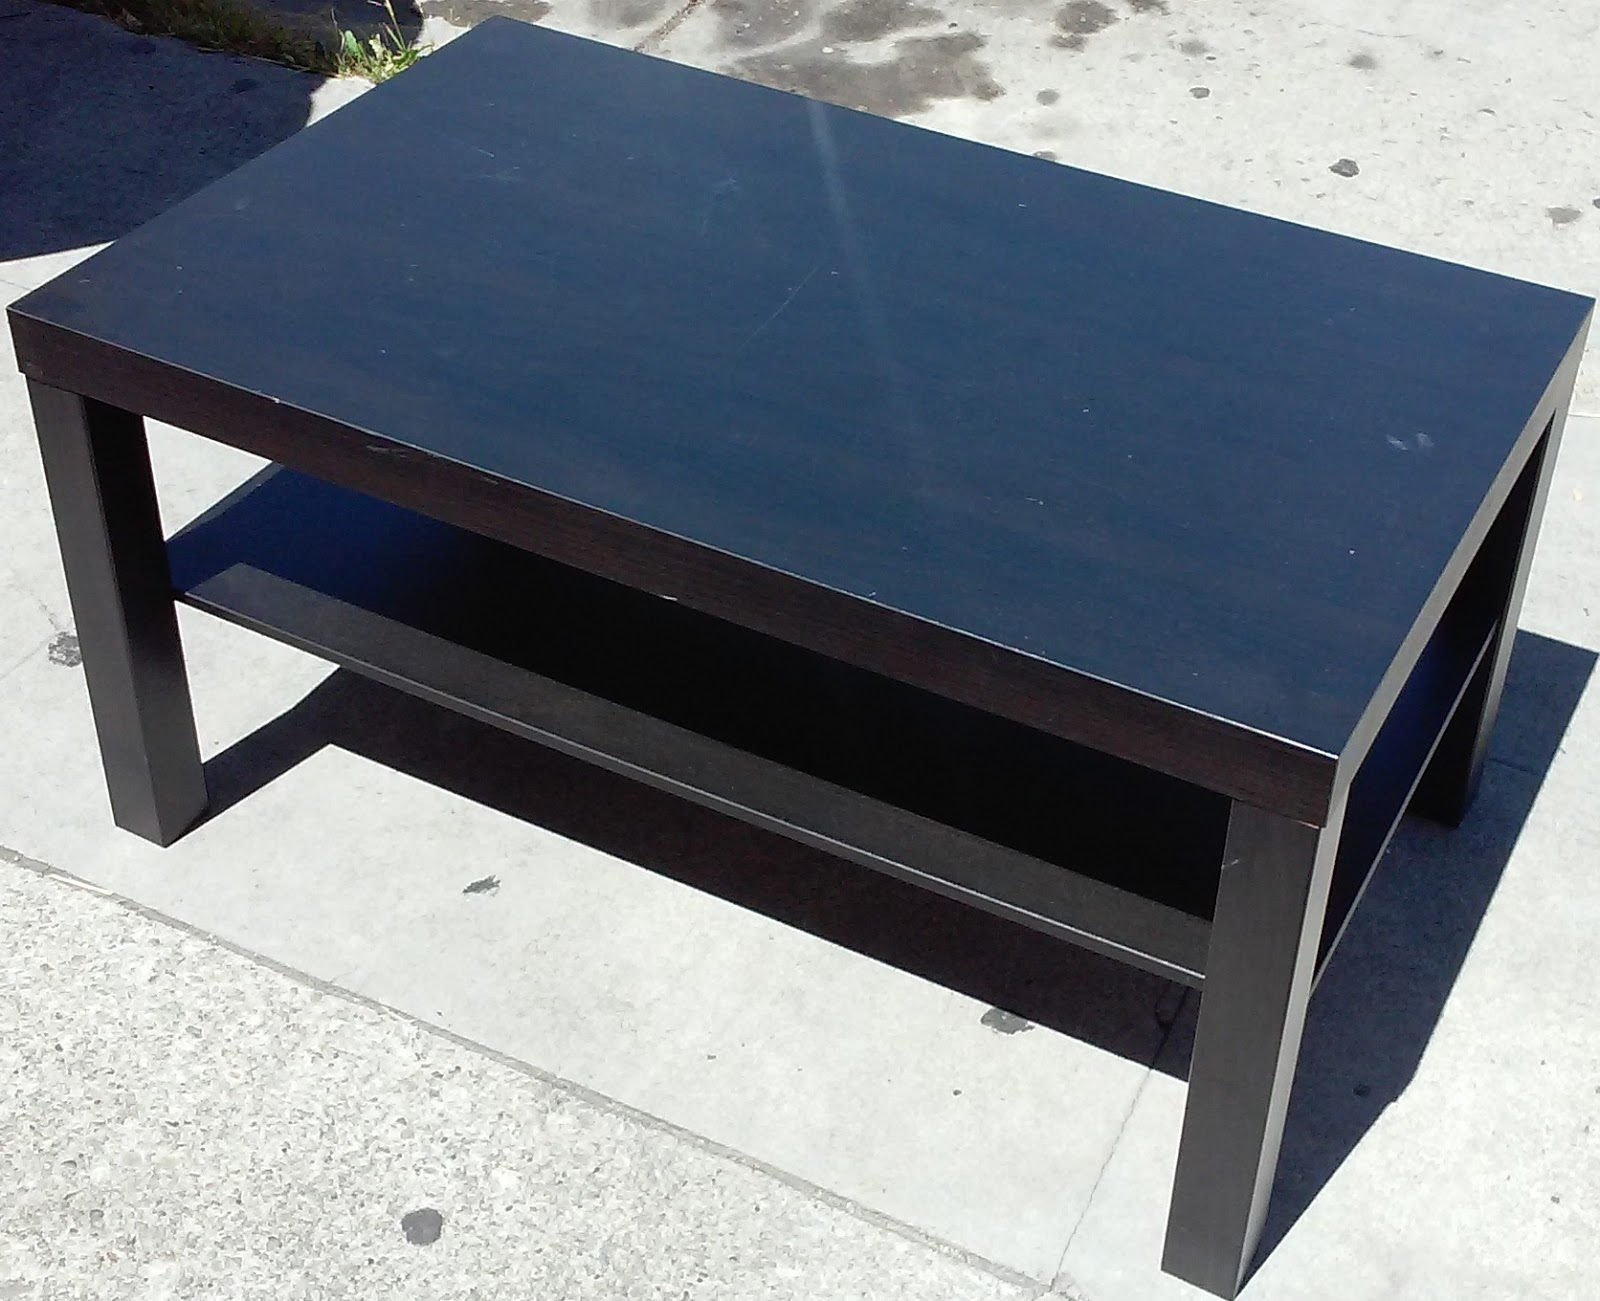 Uhuru furniture collectibles sold 3 39 wide ikea coffee for Coffee tables 50cm wide